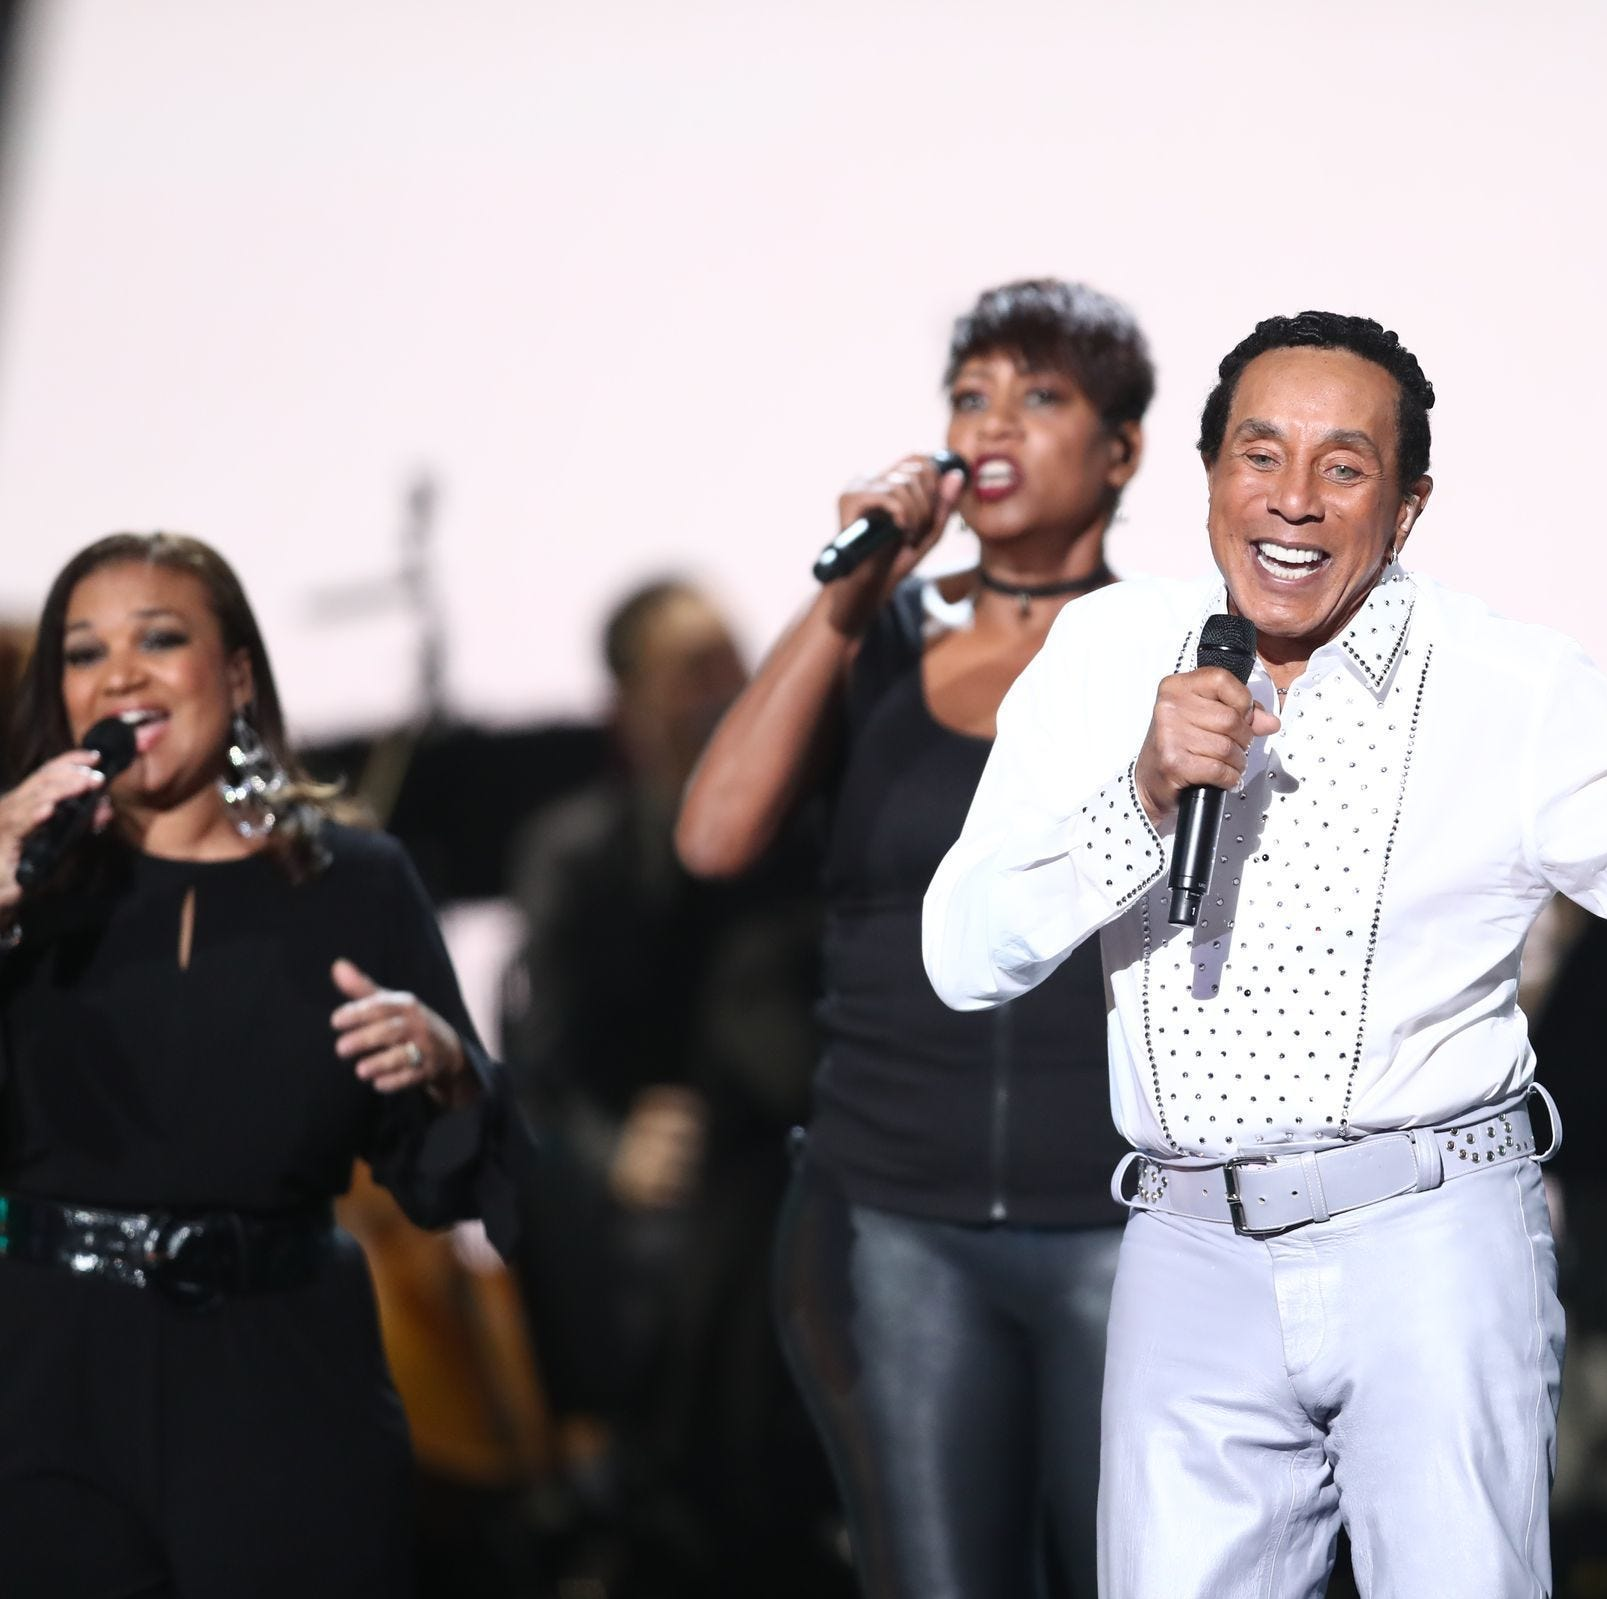 Smokey Robinson to headline River Days festival as event moves to West Riverfront Park